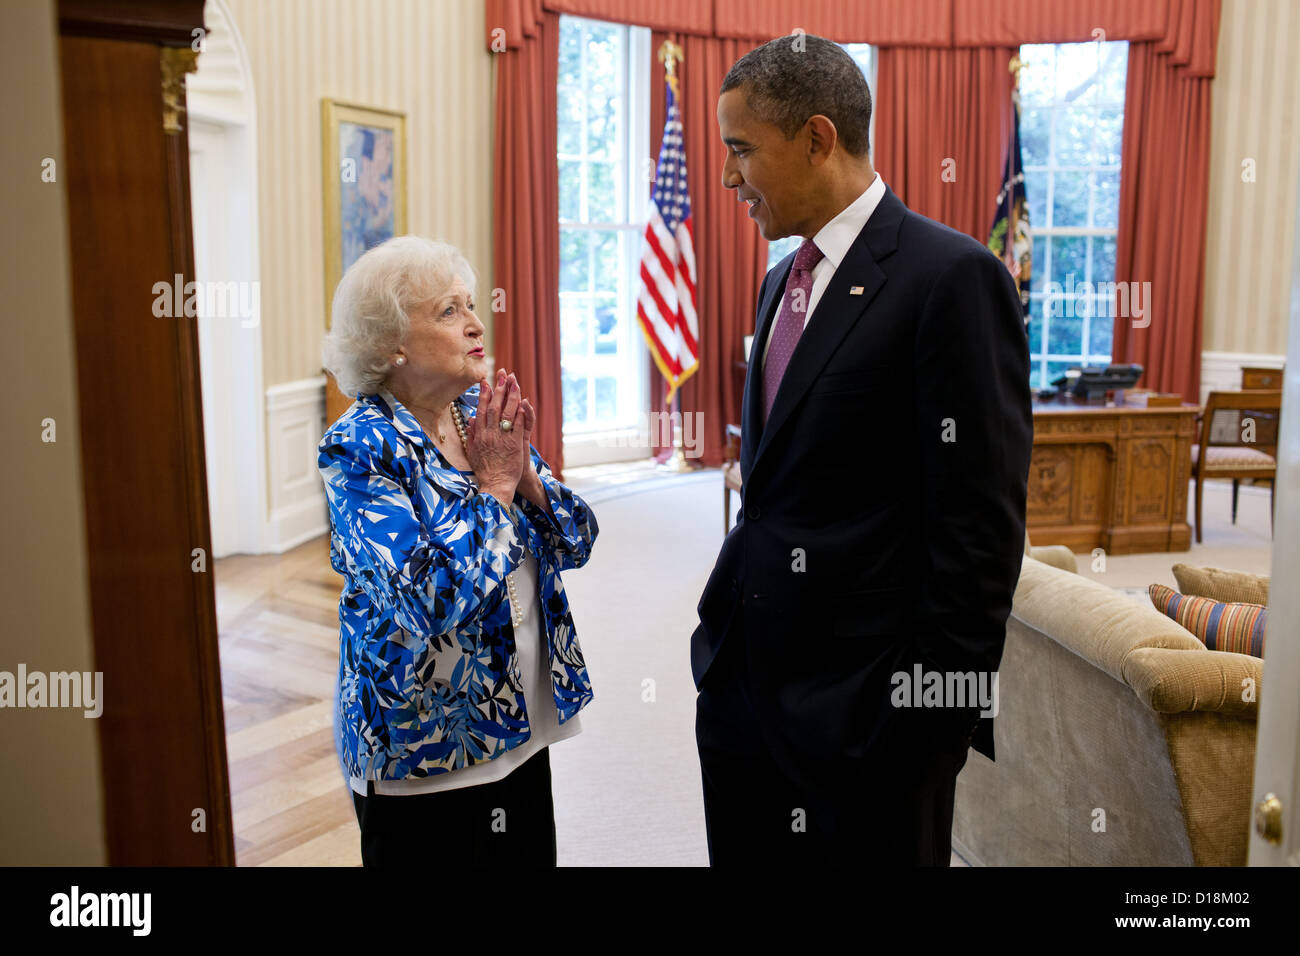 President Barack Obama talks with Betty White in the Oval Office, June 11, 2012. - Stock Image